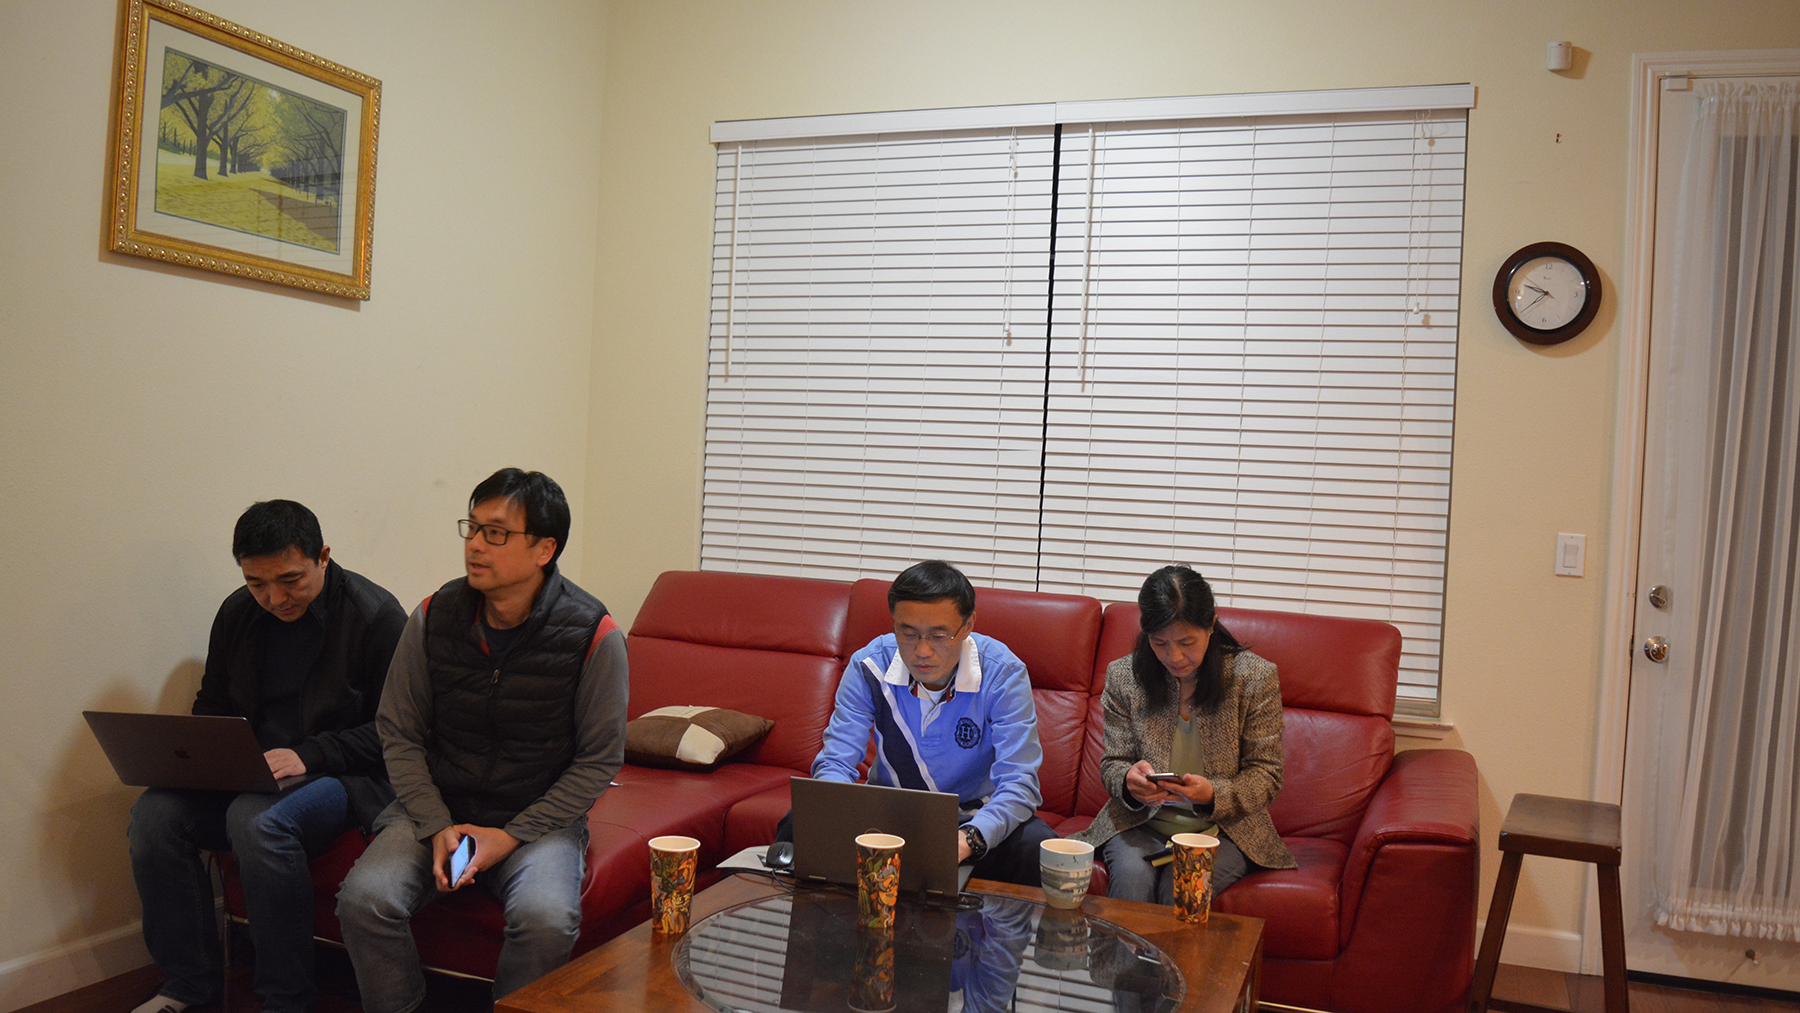 Members of Wuhan United, a Bay Area-based group, coordinate their coronavirus response. (Photo courtesy of Tom Gong)